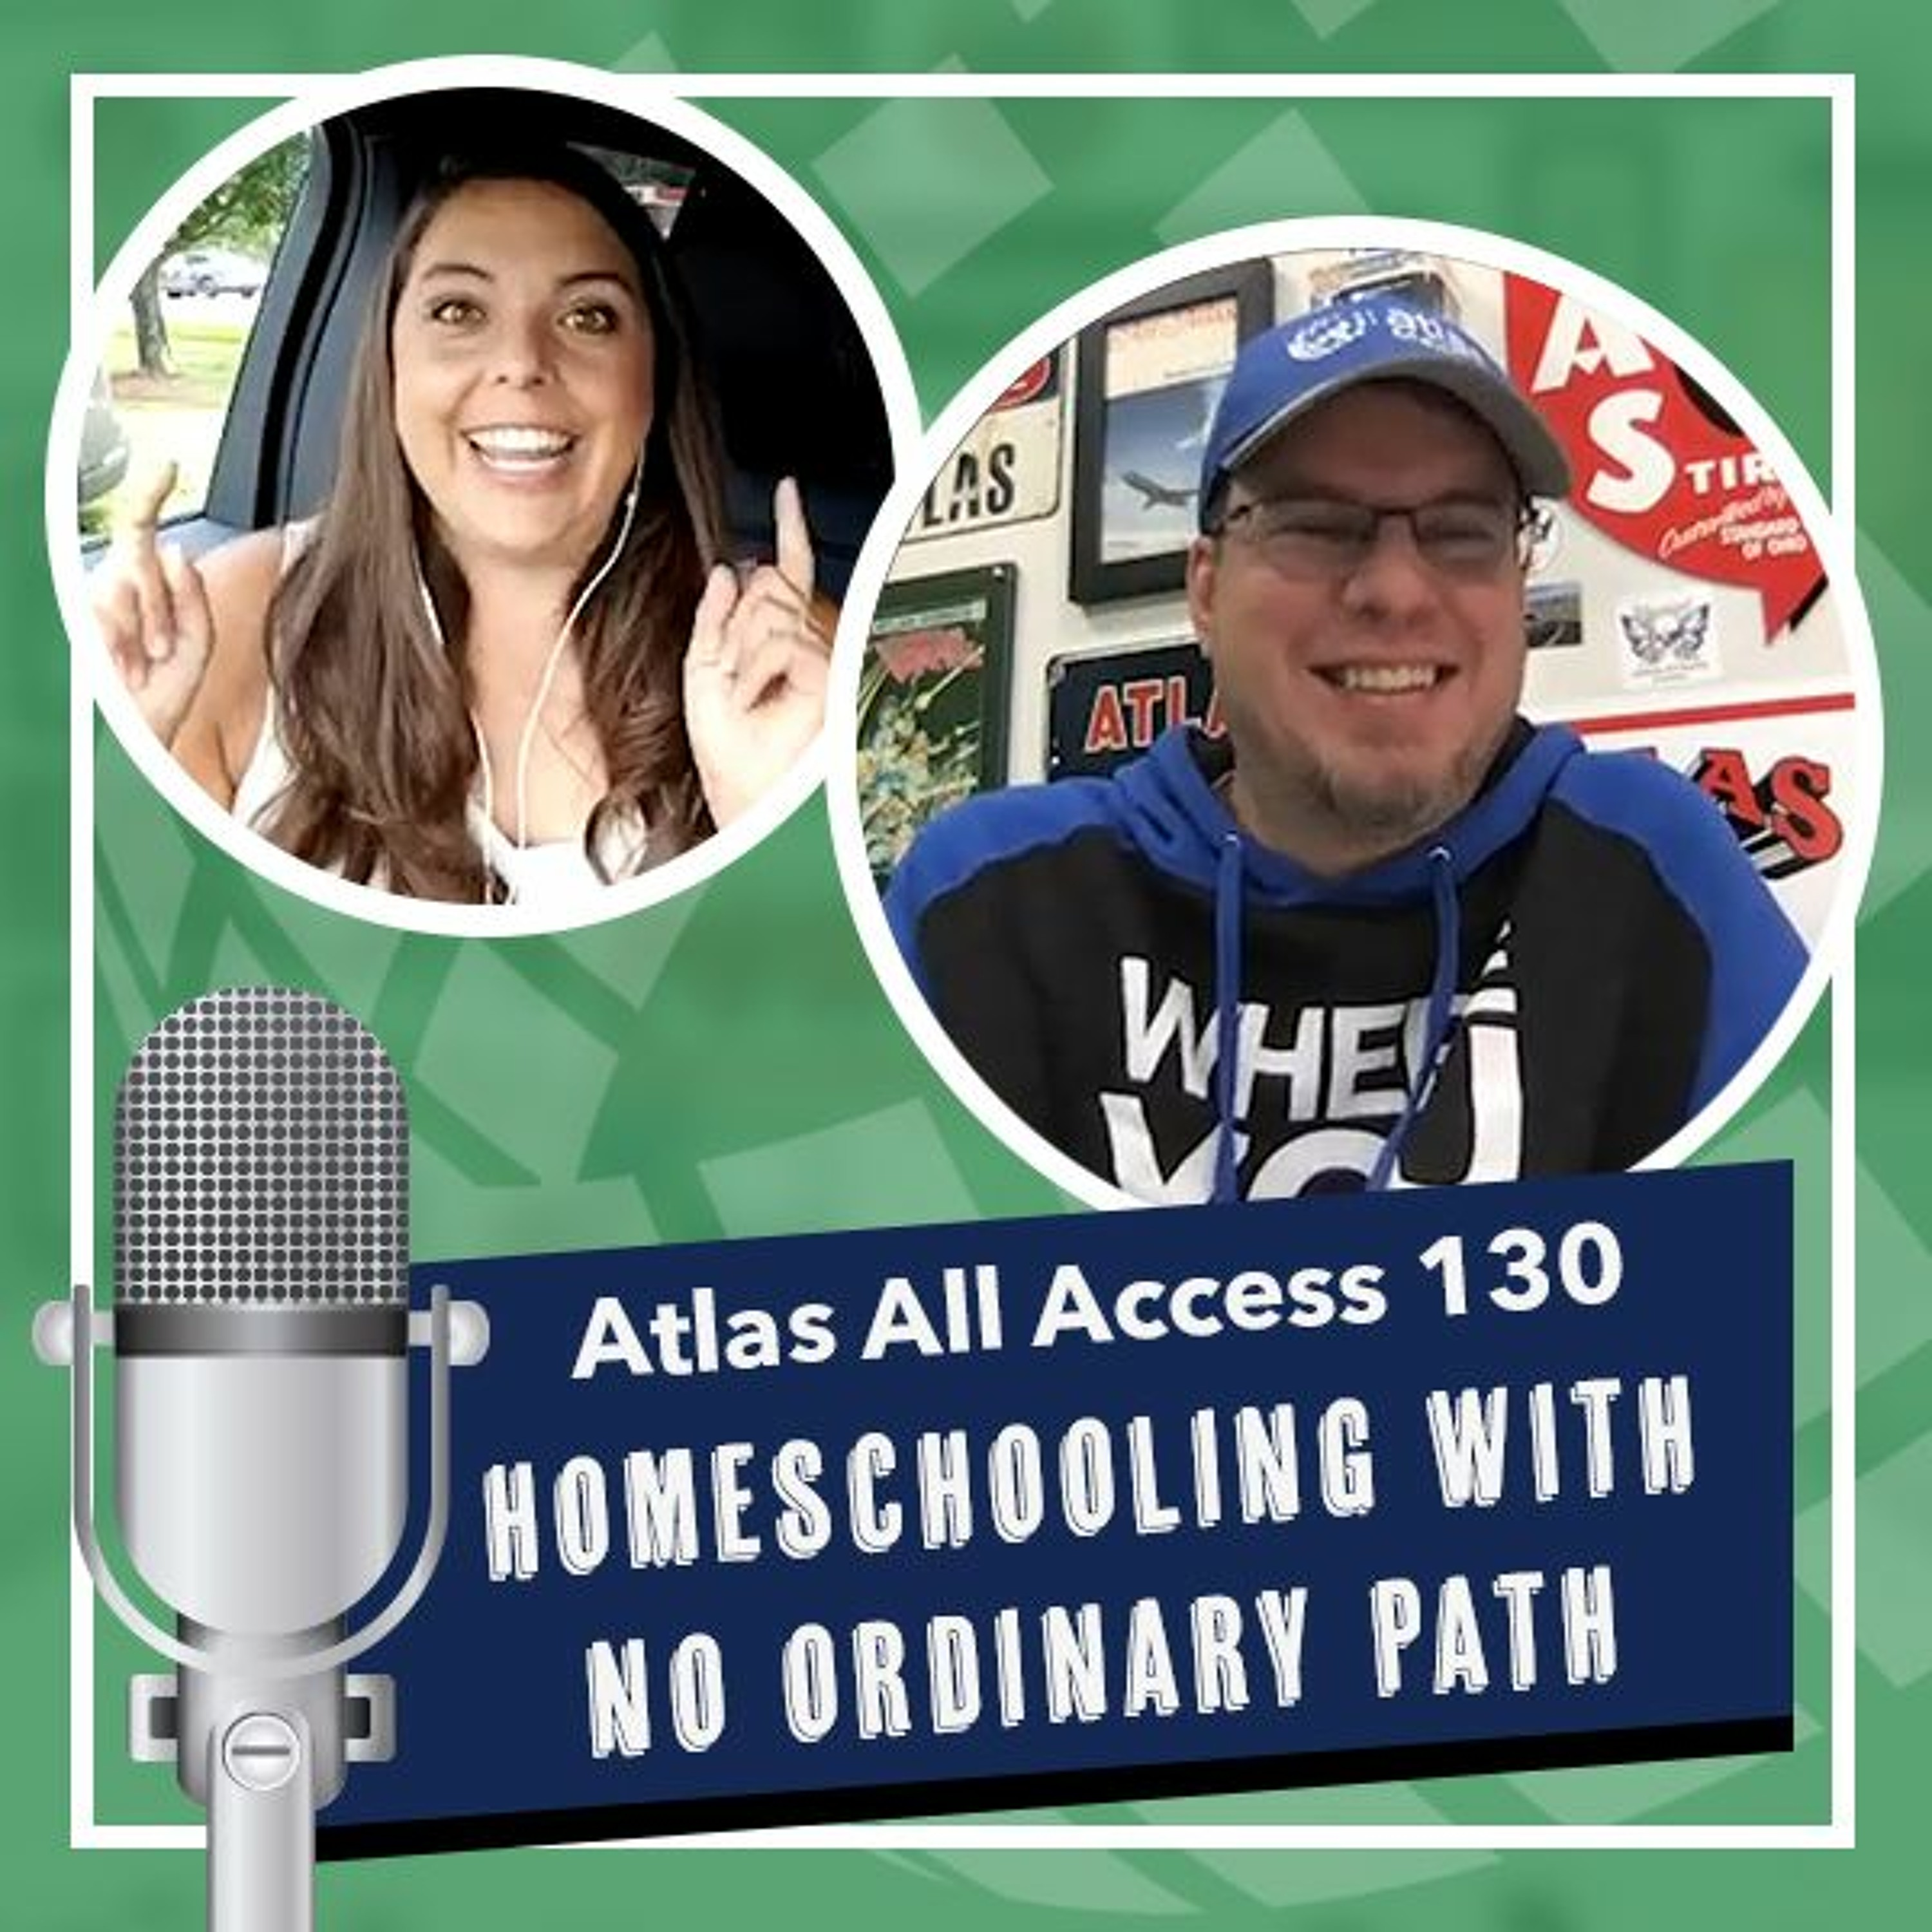 How to homeschool with No Ordinary Path - Atlas All Access 130